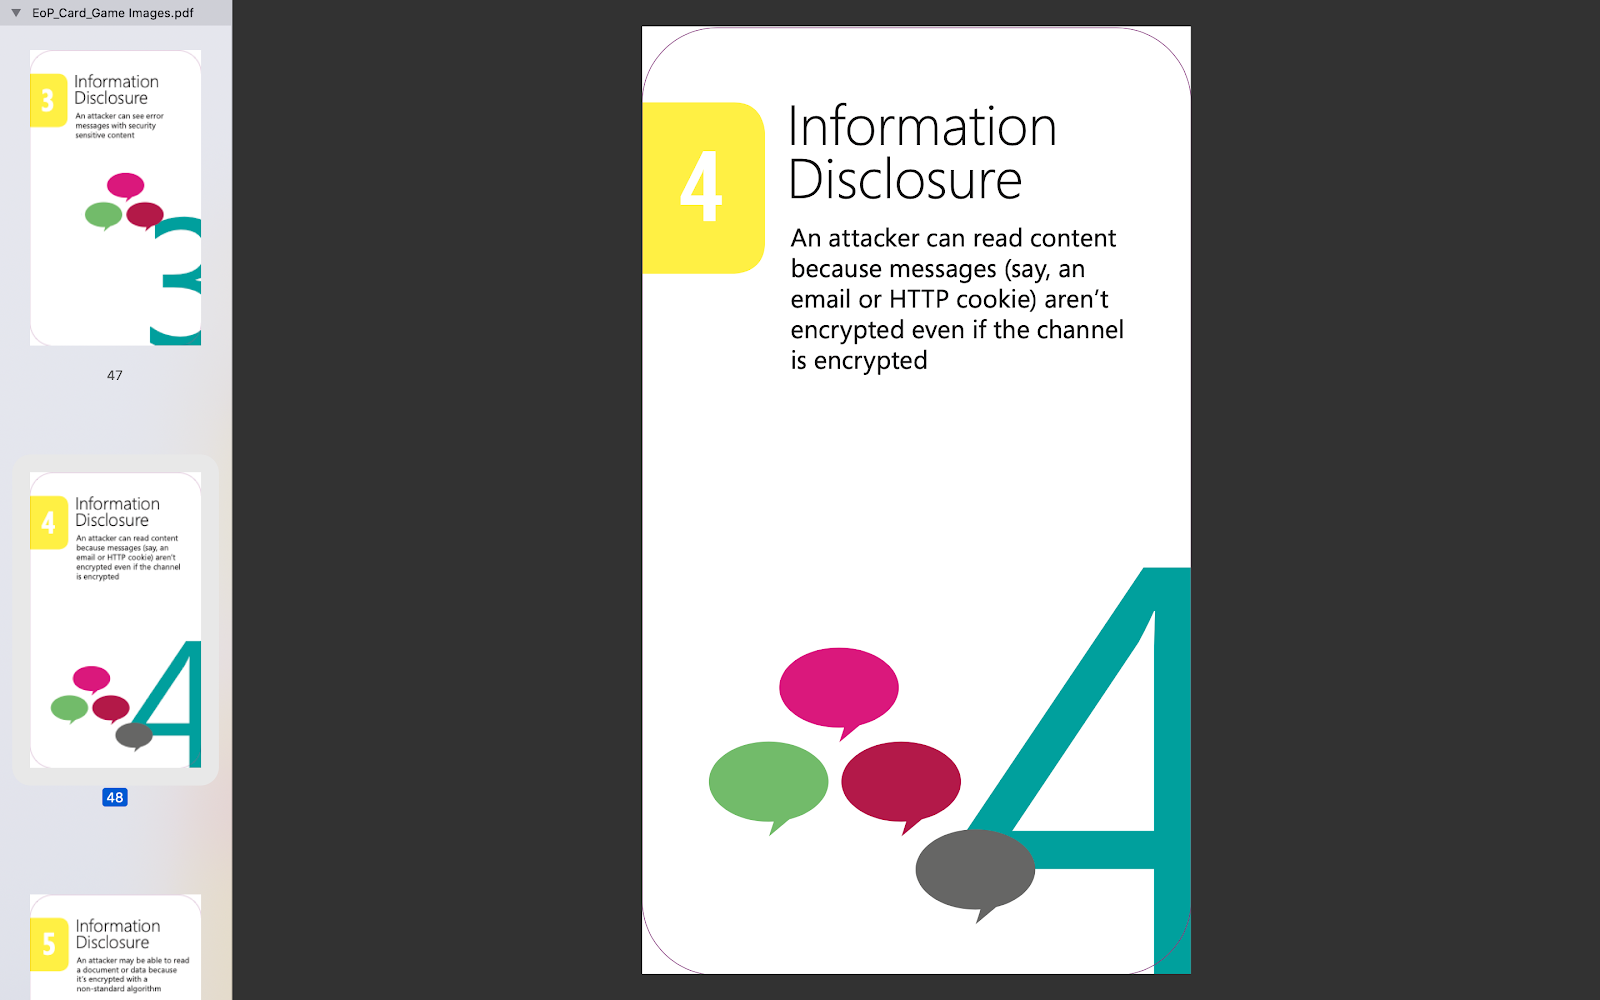 Example card played in the game. This one is about information disclosure.